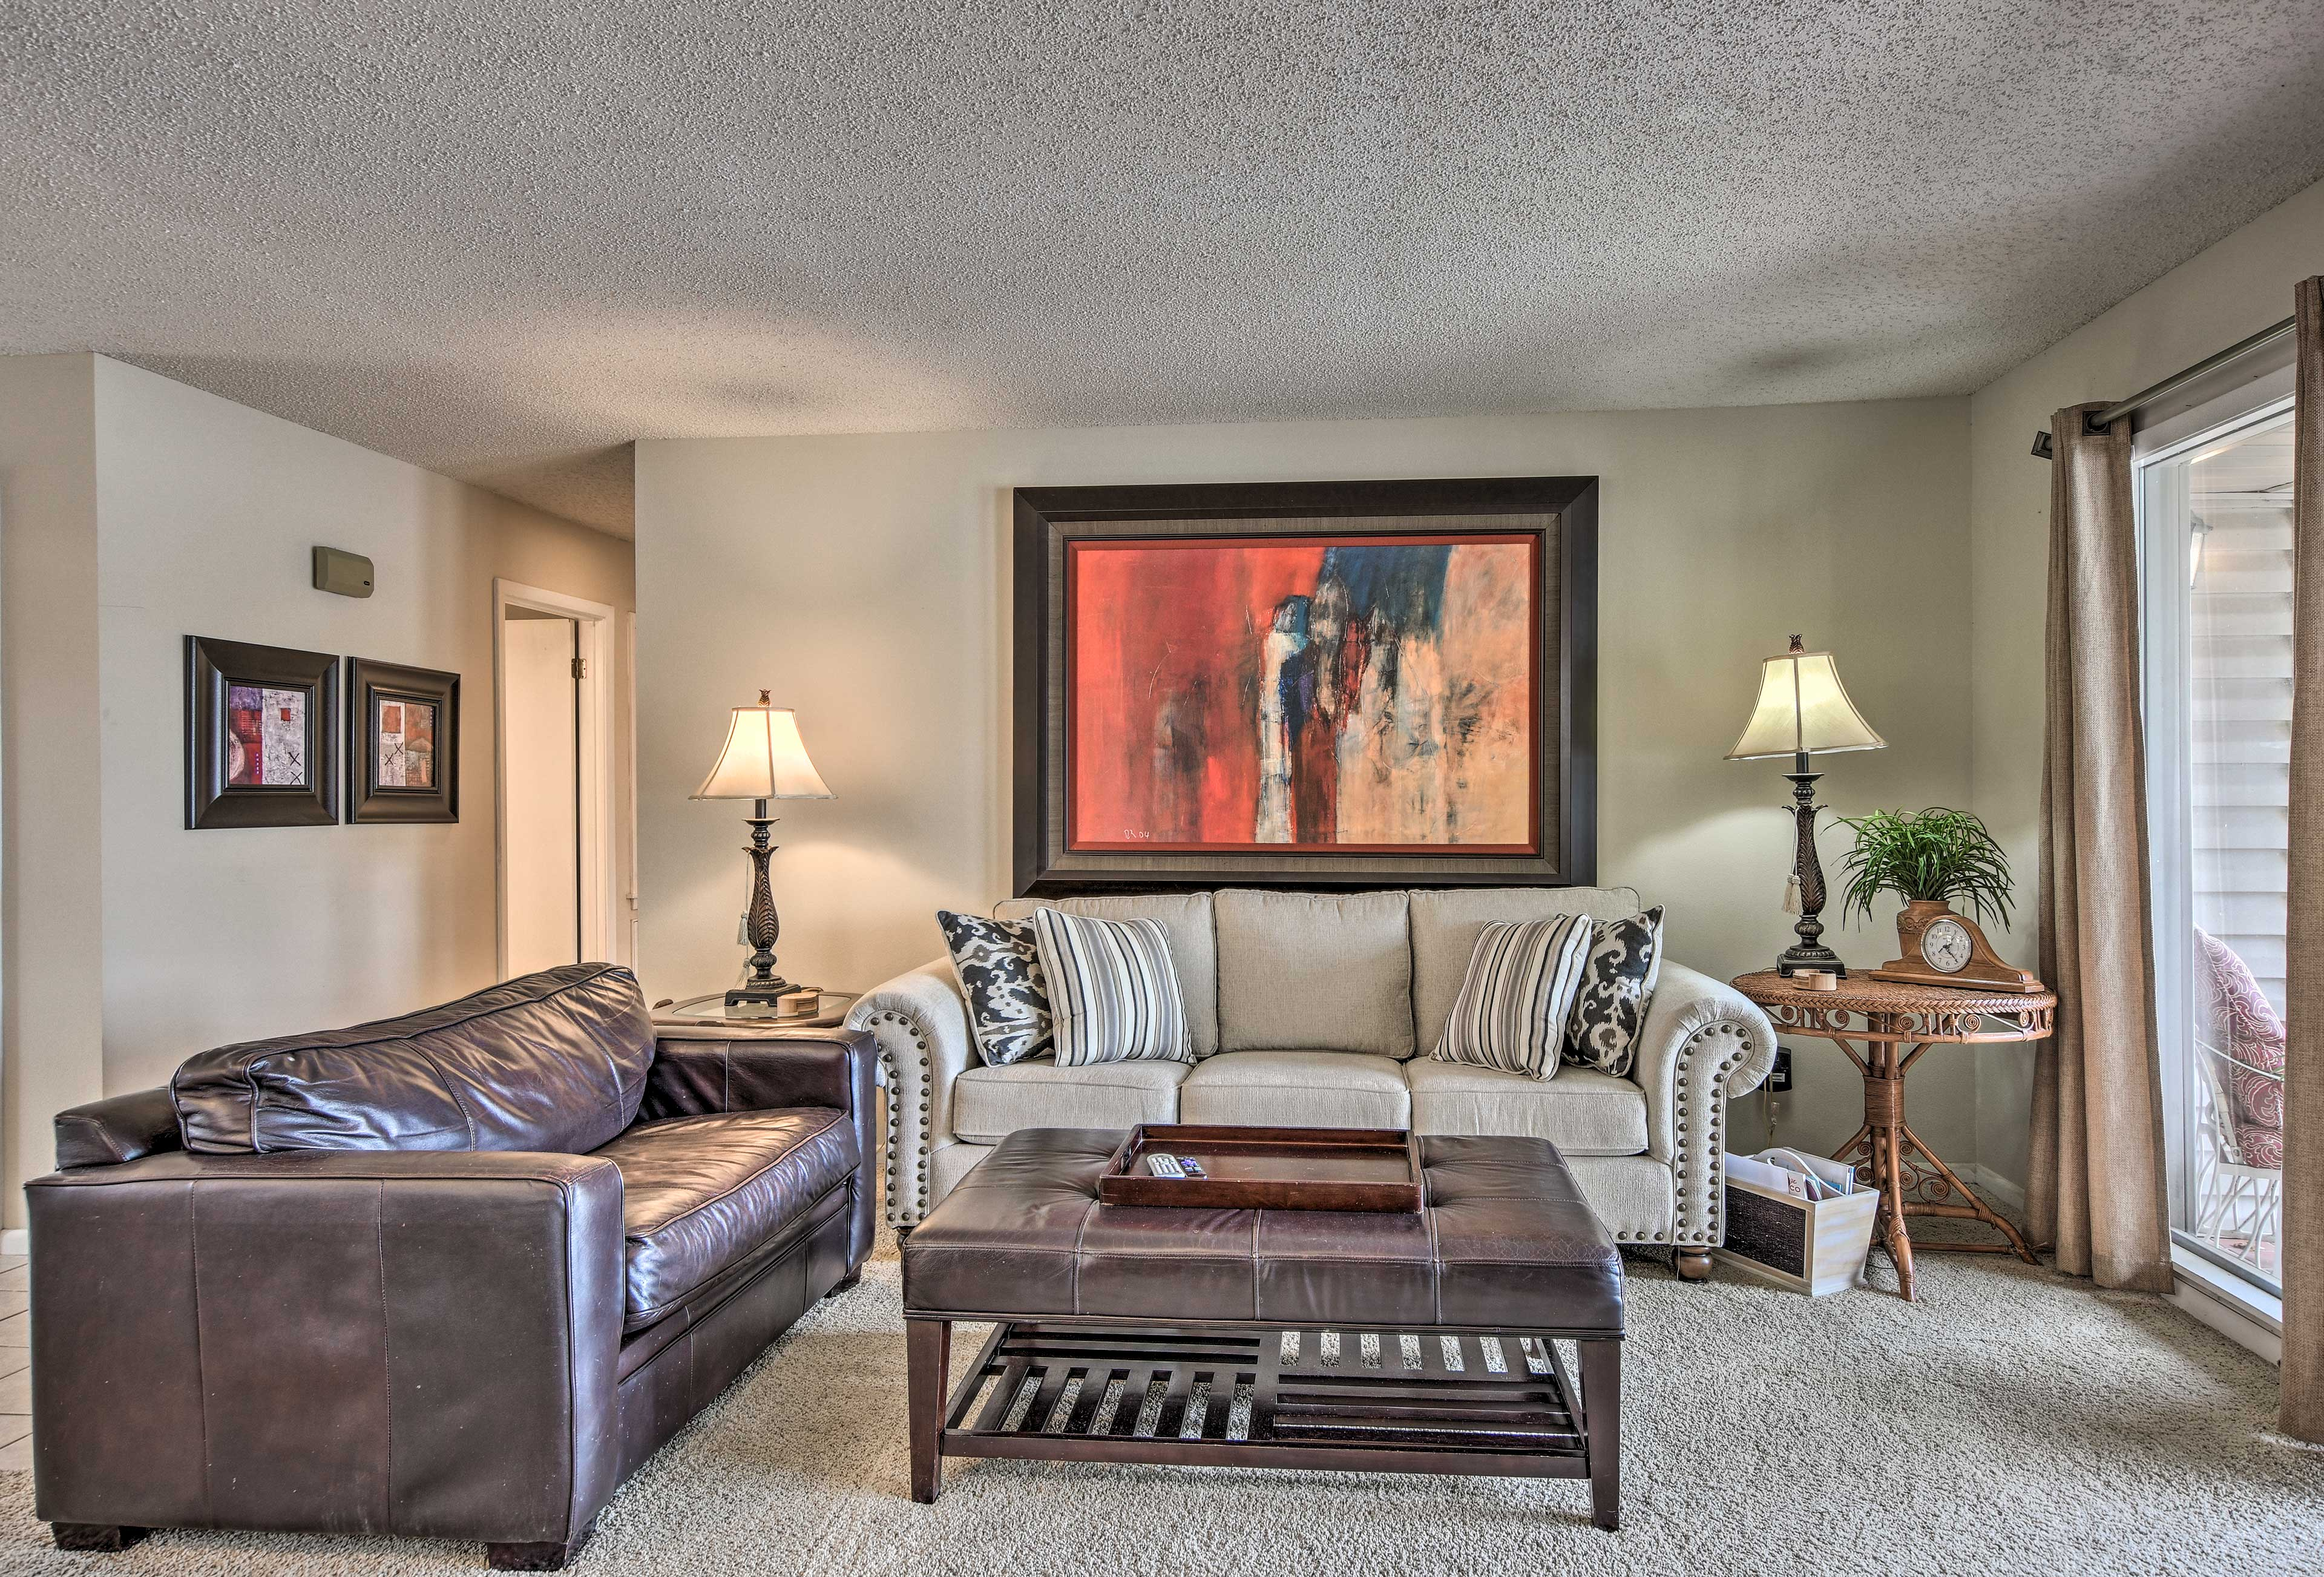 The living room provides additional sleeping on the pullout sofa and chair.